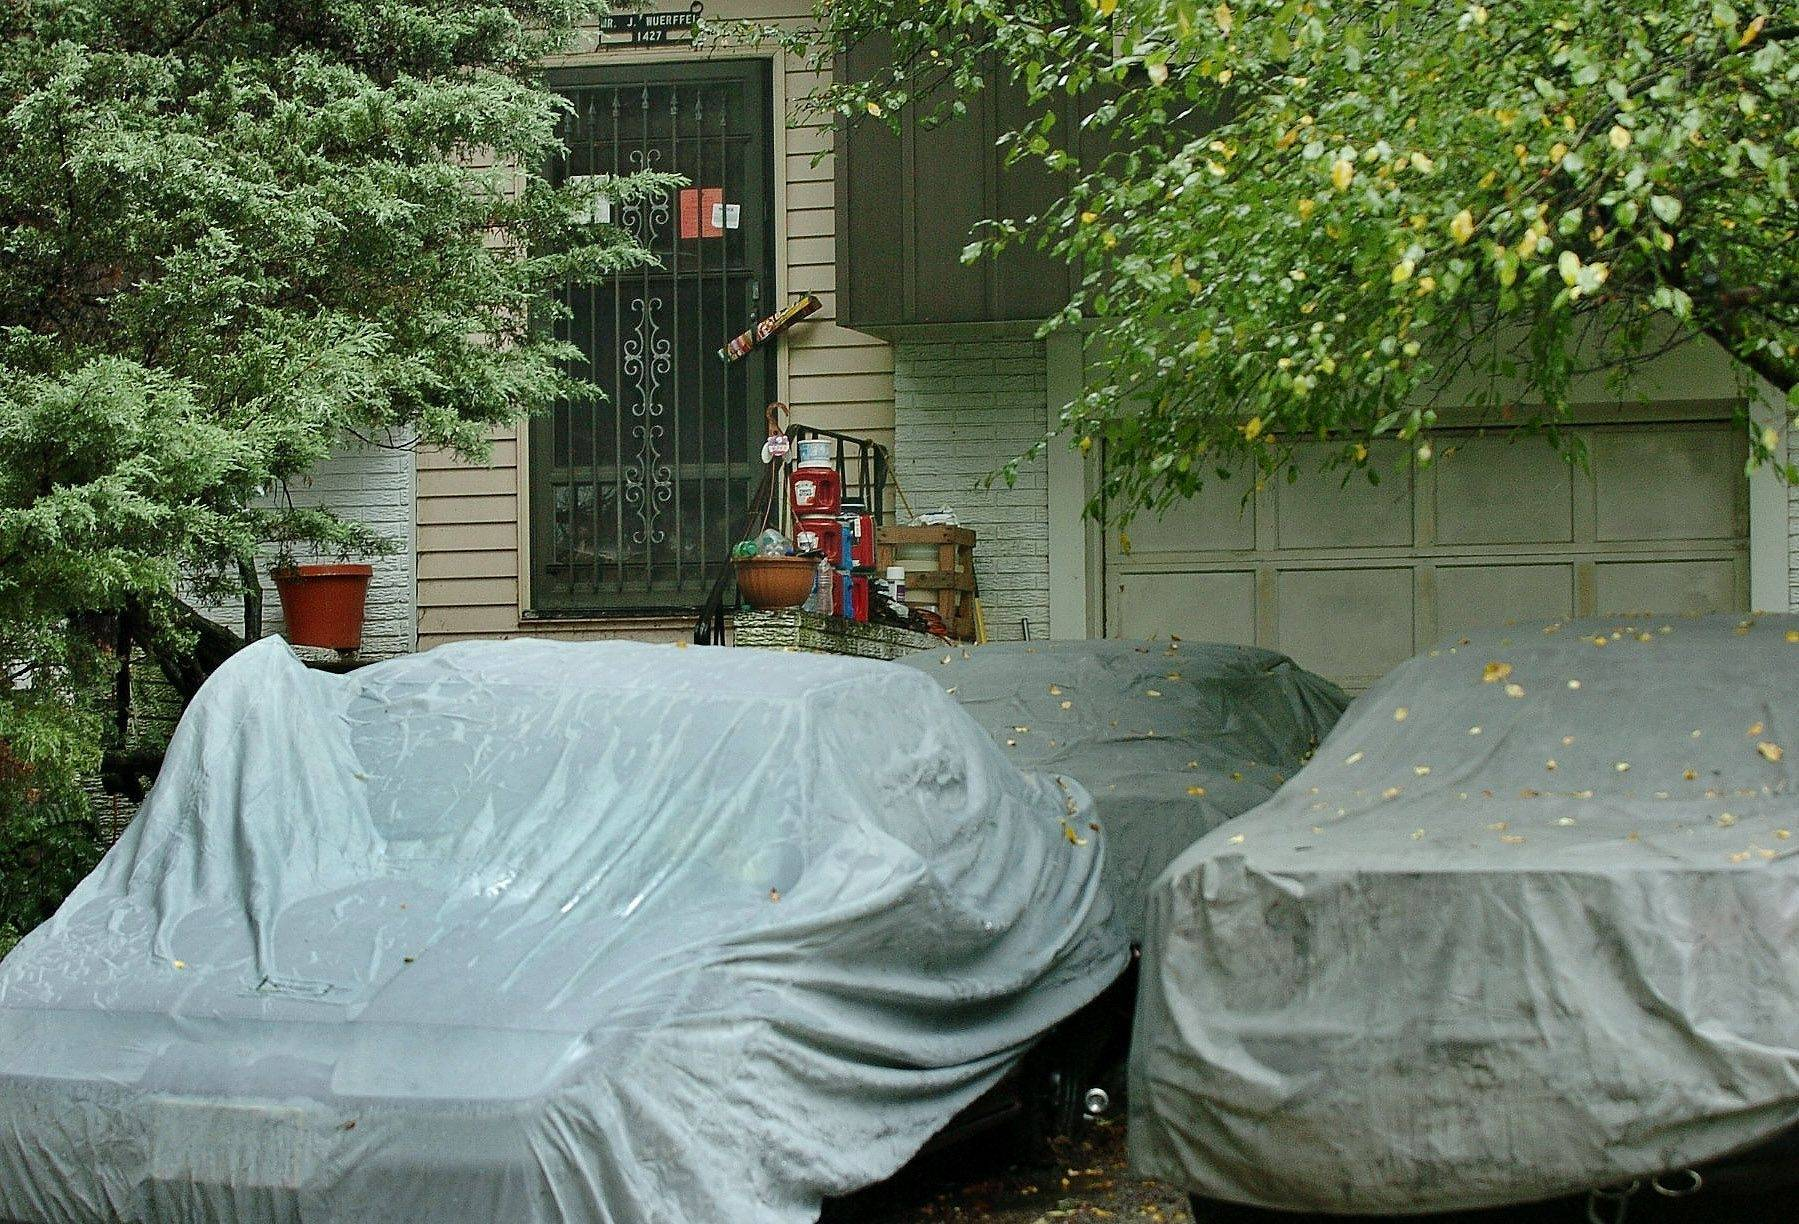 John Wuerffel's three nonoperational vehicles as they recently appeared covered in the driveway of his house on the 1400 block of Hampton Lane in Schaumburg.